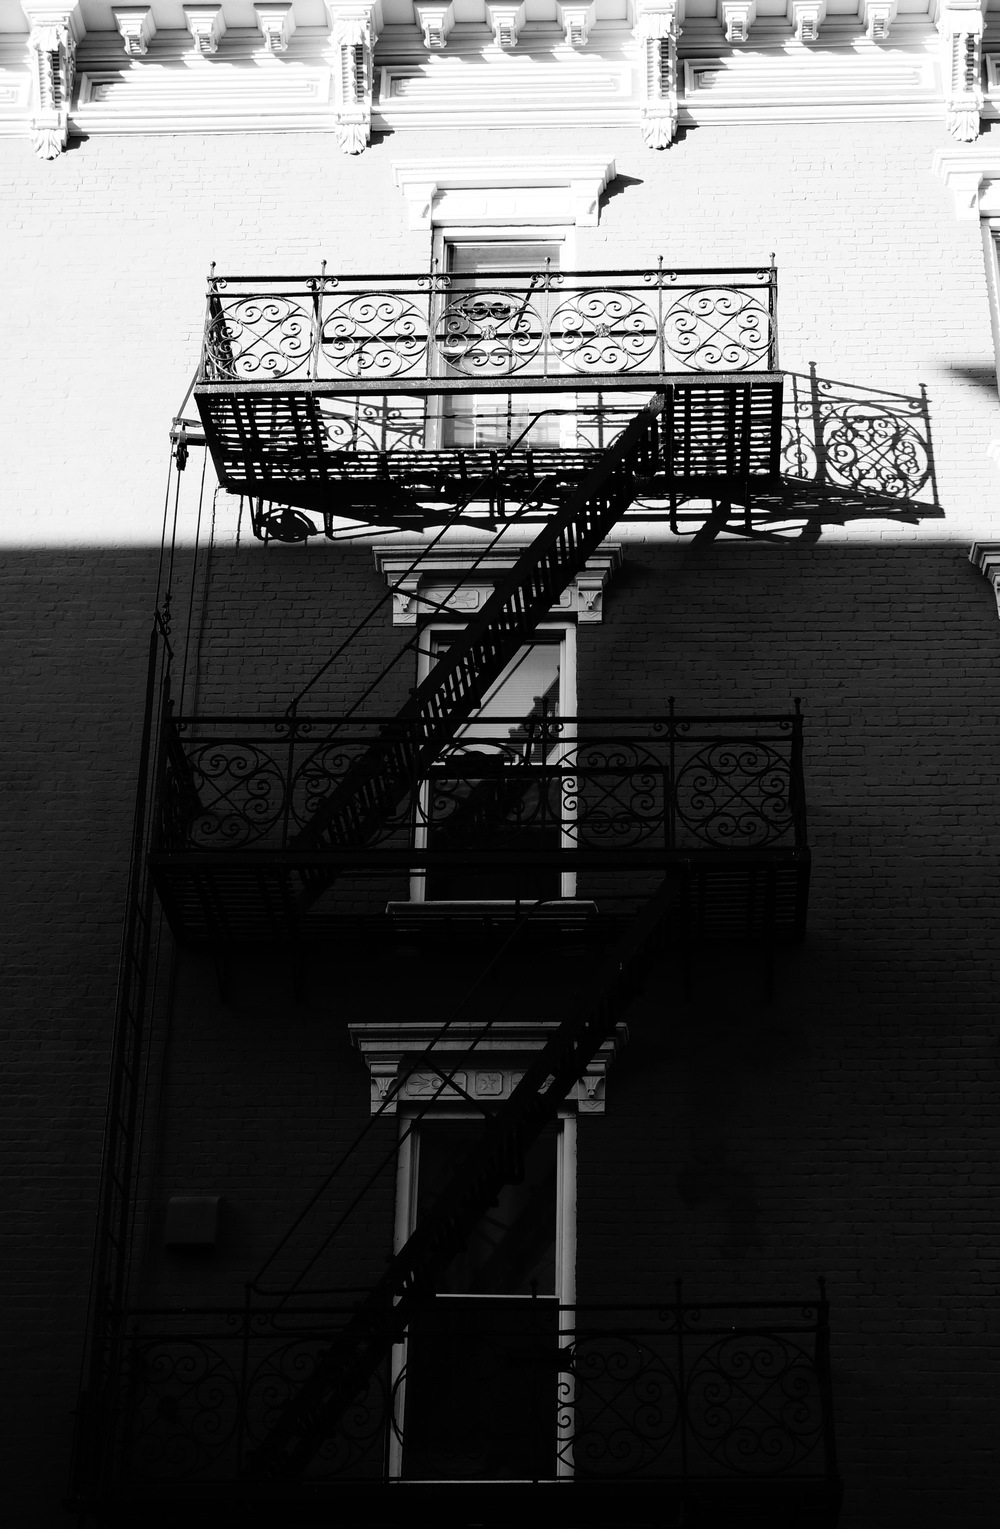 FIRE ESCAPE LADDER 24 (2014) PHOTO PRINT 160X110 CM EDITION 1/3